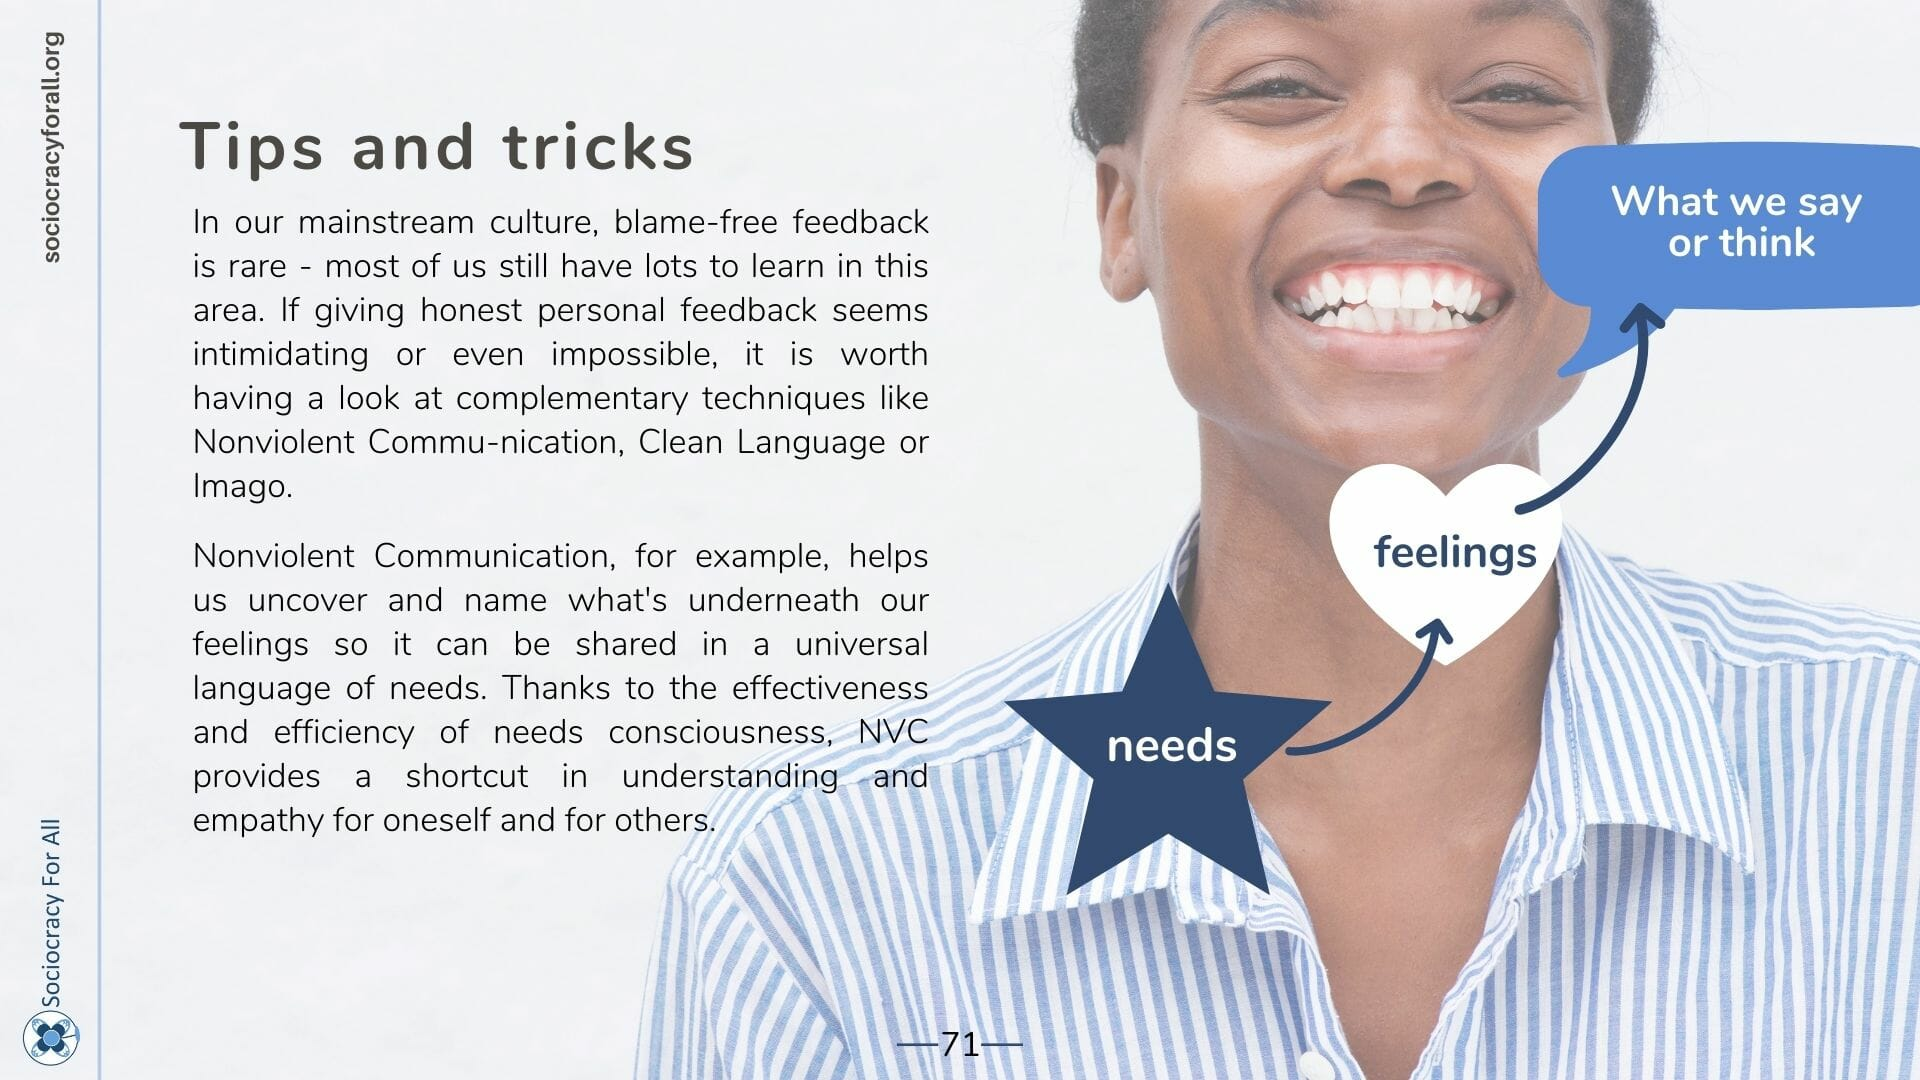 Tips and tricks In our mainstream culture, blame-free feedback is rare - most of us still have lots to learn in this area. If giving honest personal feedback seems intimidating or even impossible, it is worth having a look at complementary techniques like Nonviolent Commu-nication, Clean Language or Imago. Nonviolent Communication, for example, helps us uncover and name what's underneath our feelings so it can be shared in a universal language of needs. Thanks to the effectiveness and efficiency of needs consciousness, NVC provides a shortcut in understanding and empathy for oneself and for others. Our needs will give rise to feelings and will have an influence over what we say or think.